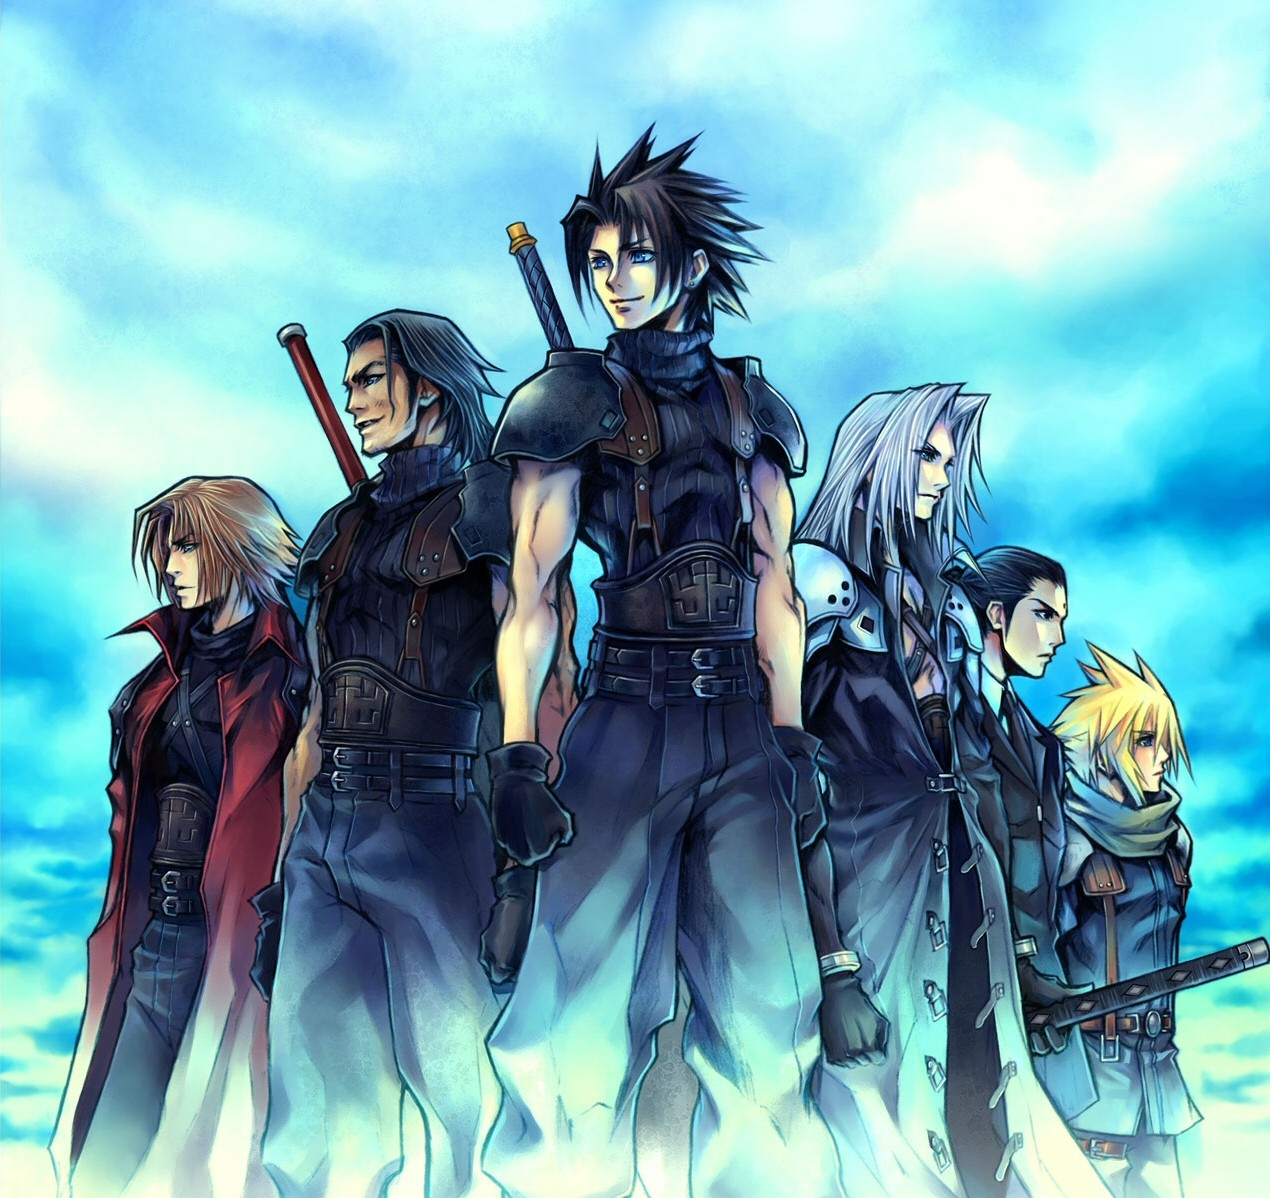 Final Fantasy 7 Anime Characters : Final fantasy vii image zerochan anime board